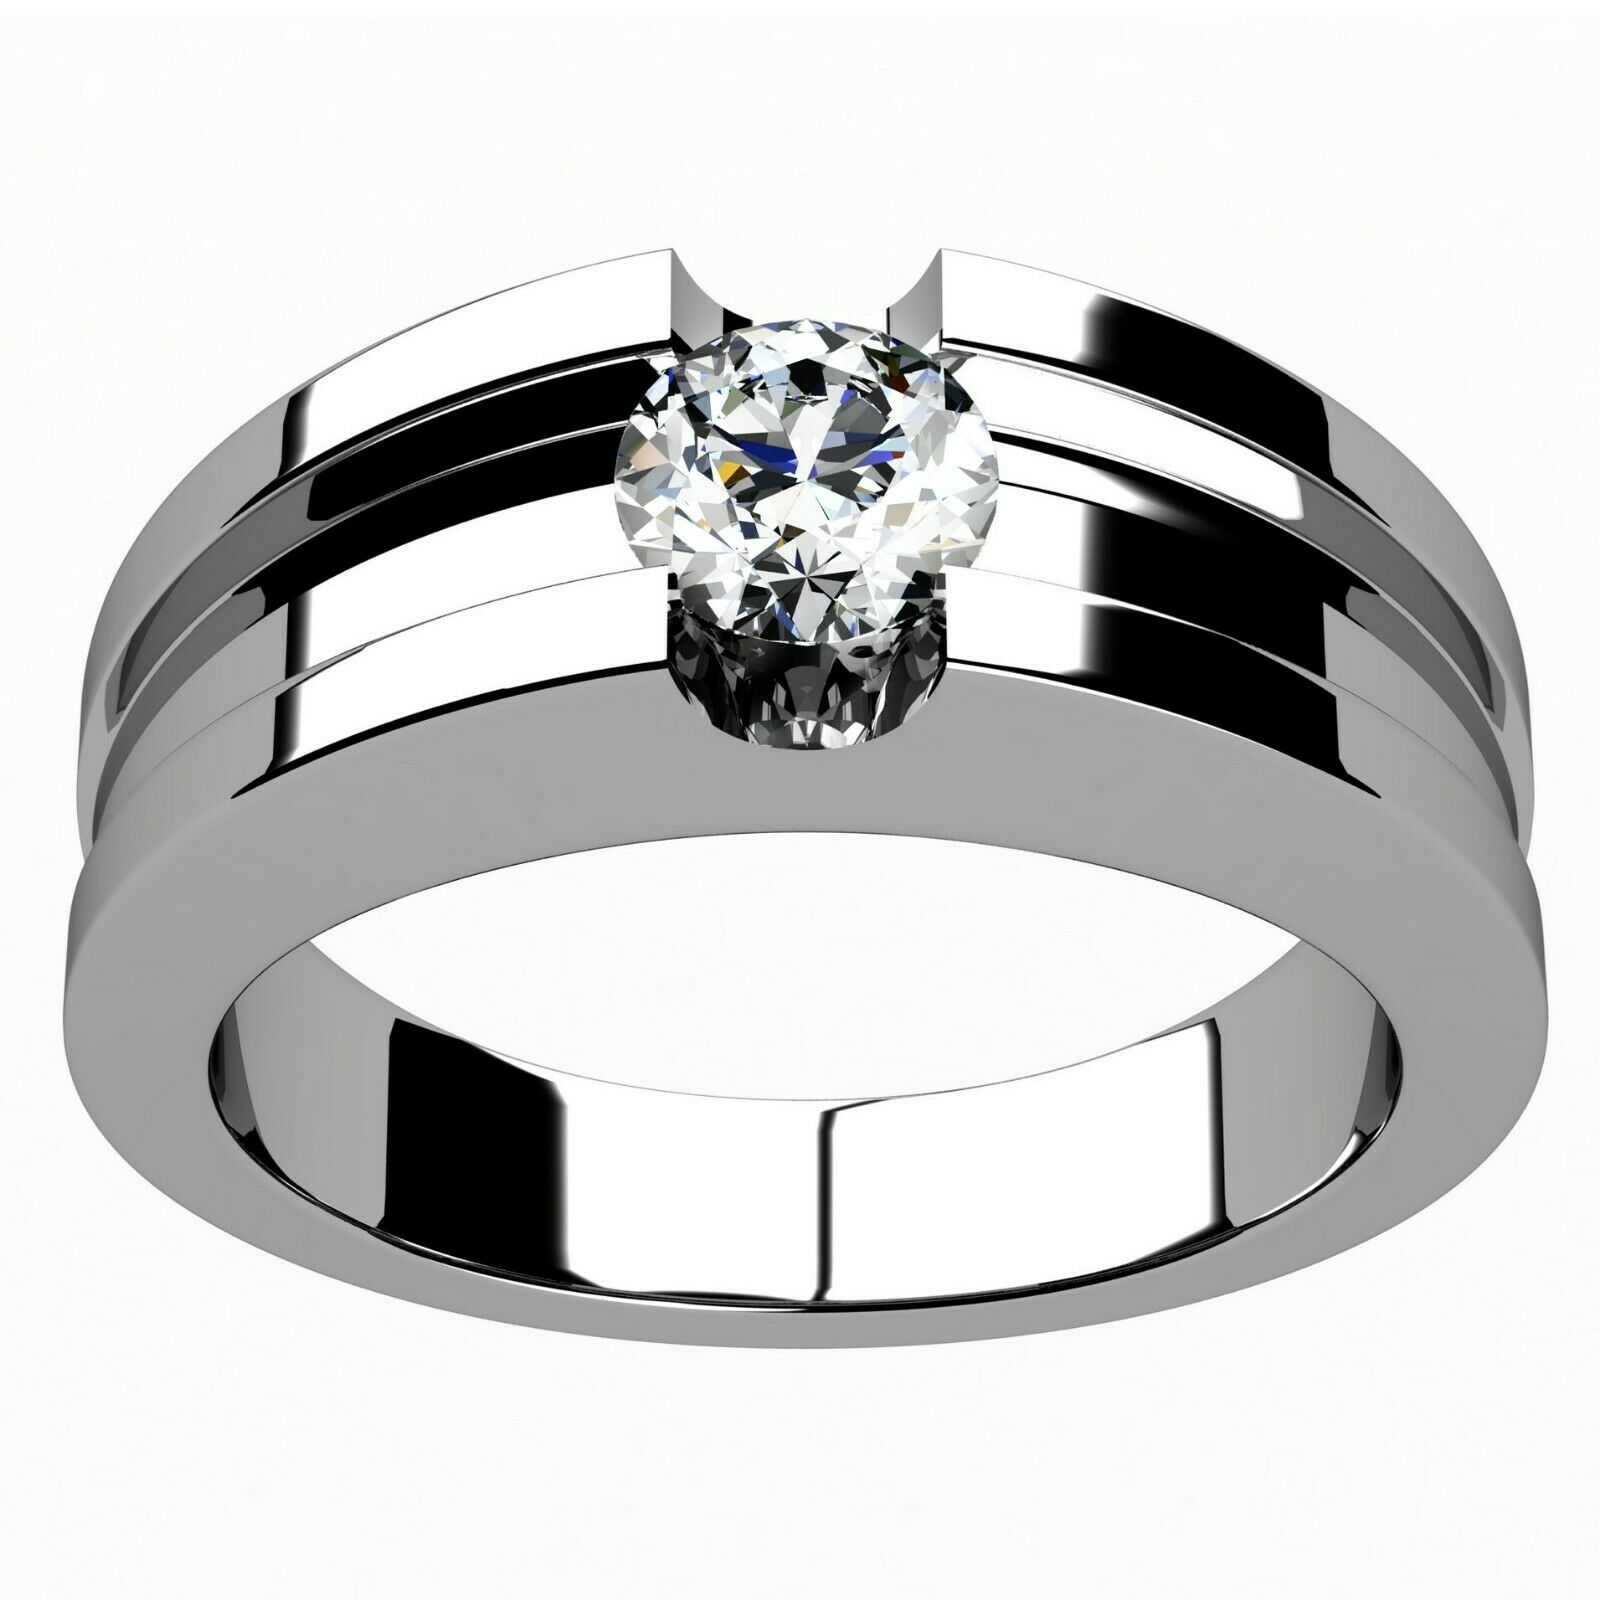 Natural GIA Certified Round Cut Diamond Solitaire Engagement Ring 14k 0.70 Carat